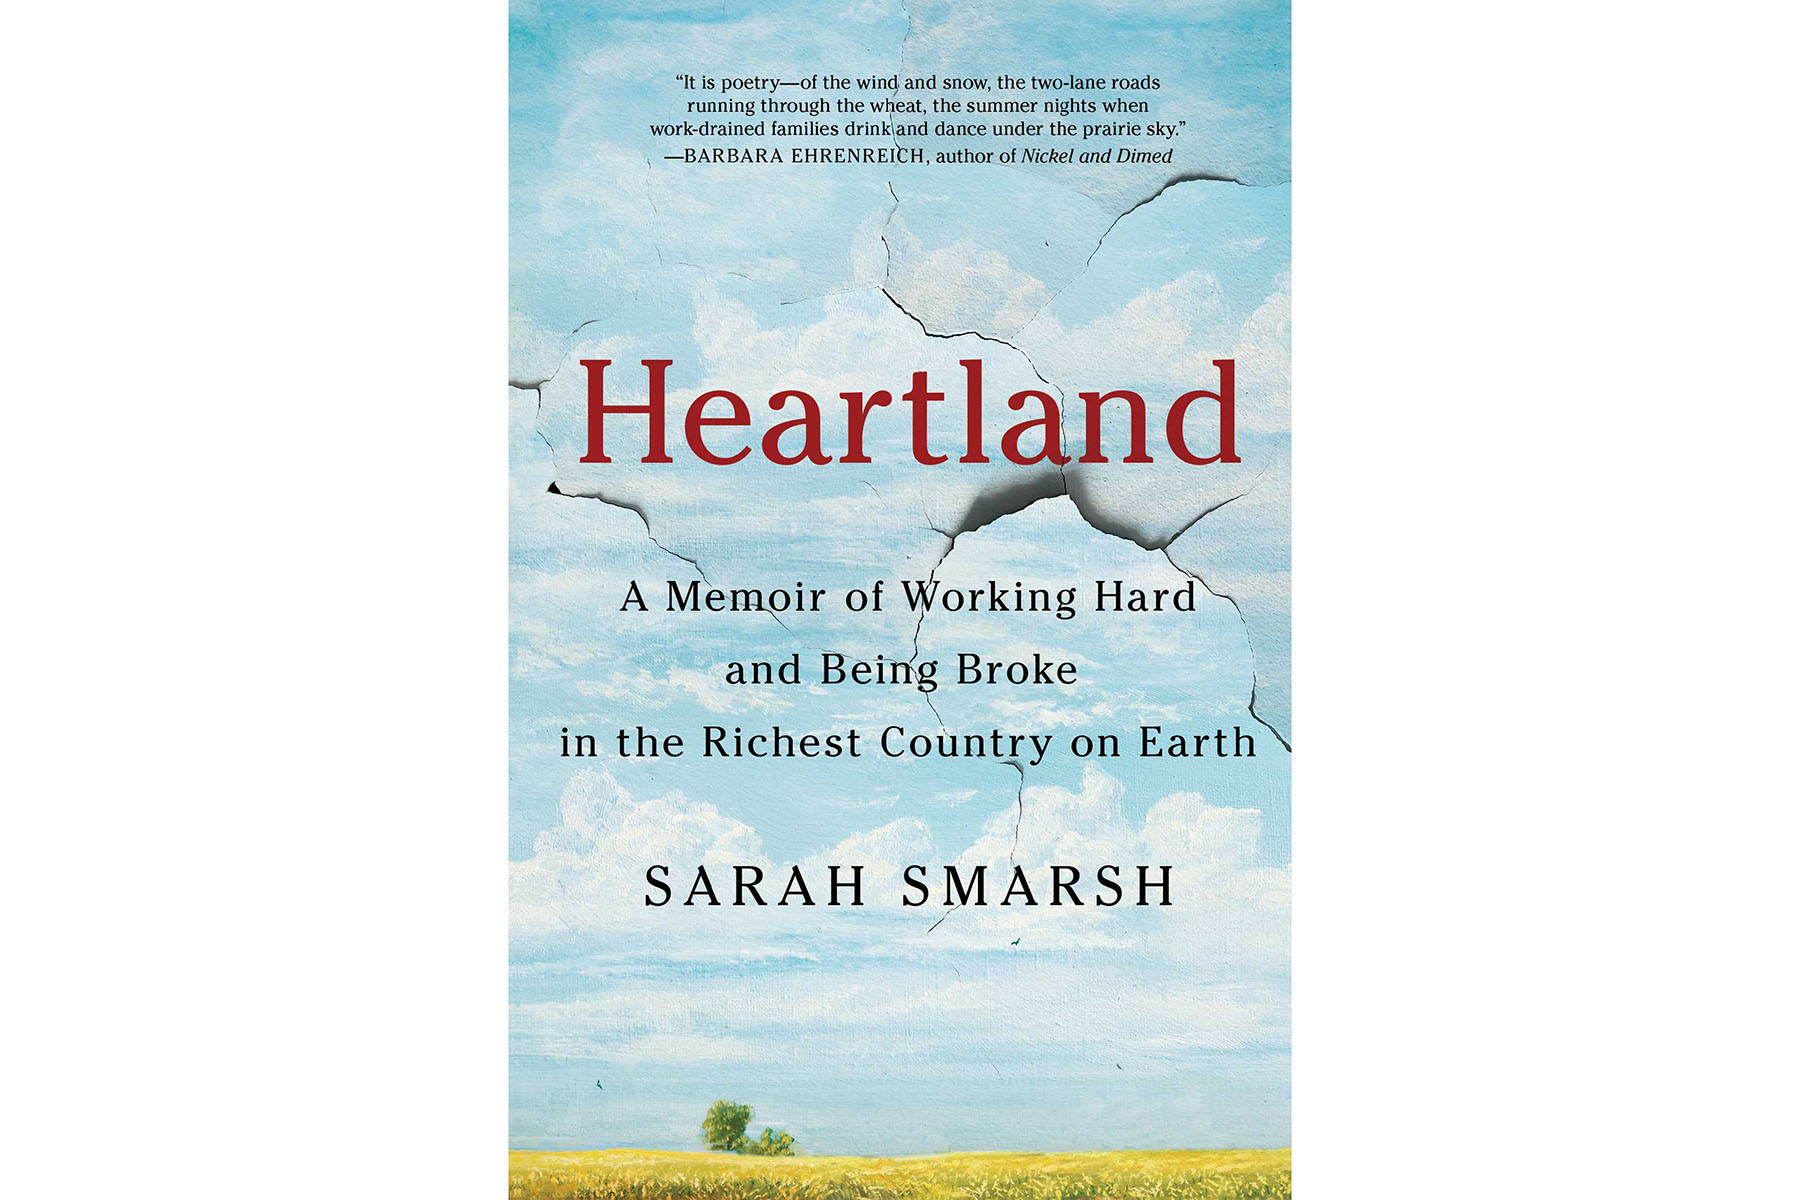 Cover of Heartland: A Memoir of Working Hard and Being Broke in the Richest Country on Earth, by Sarah Smarsh